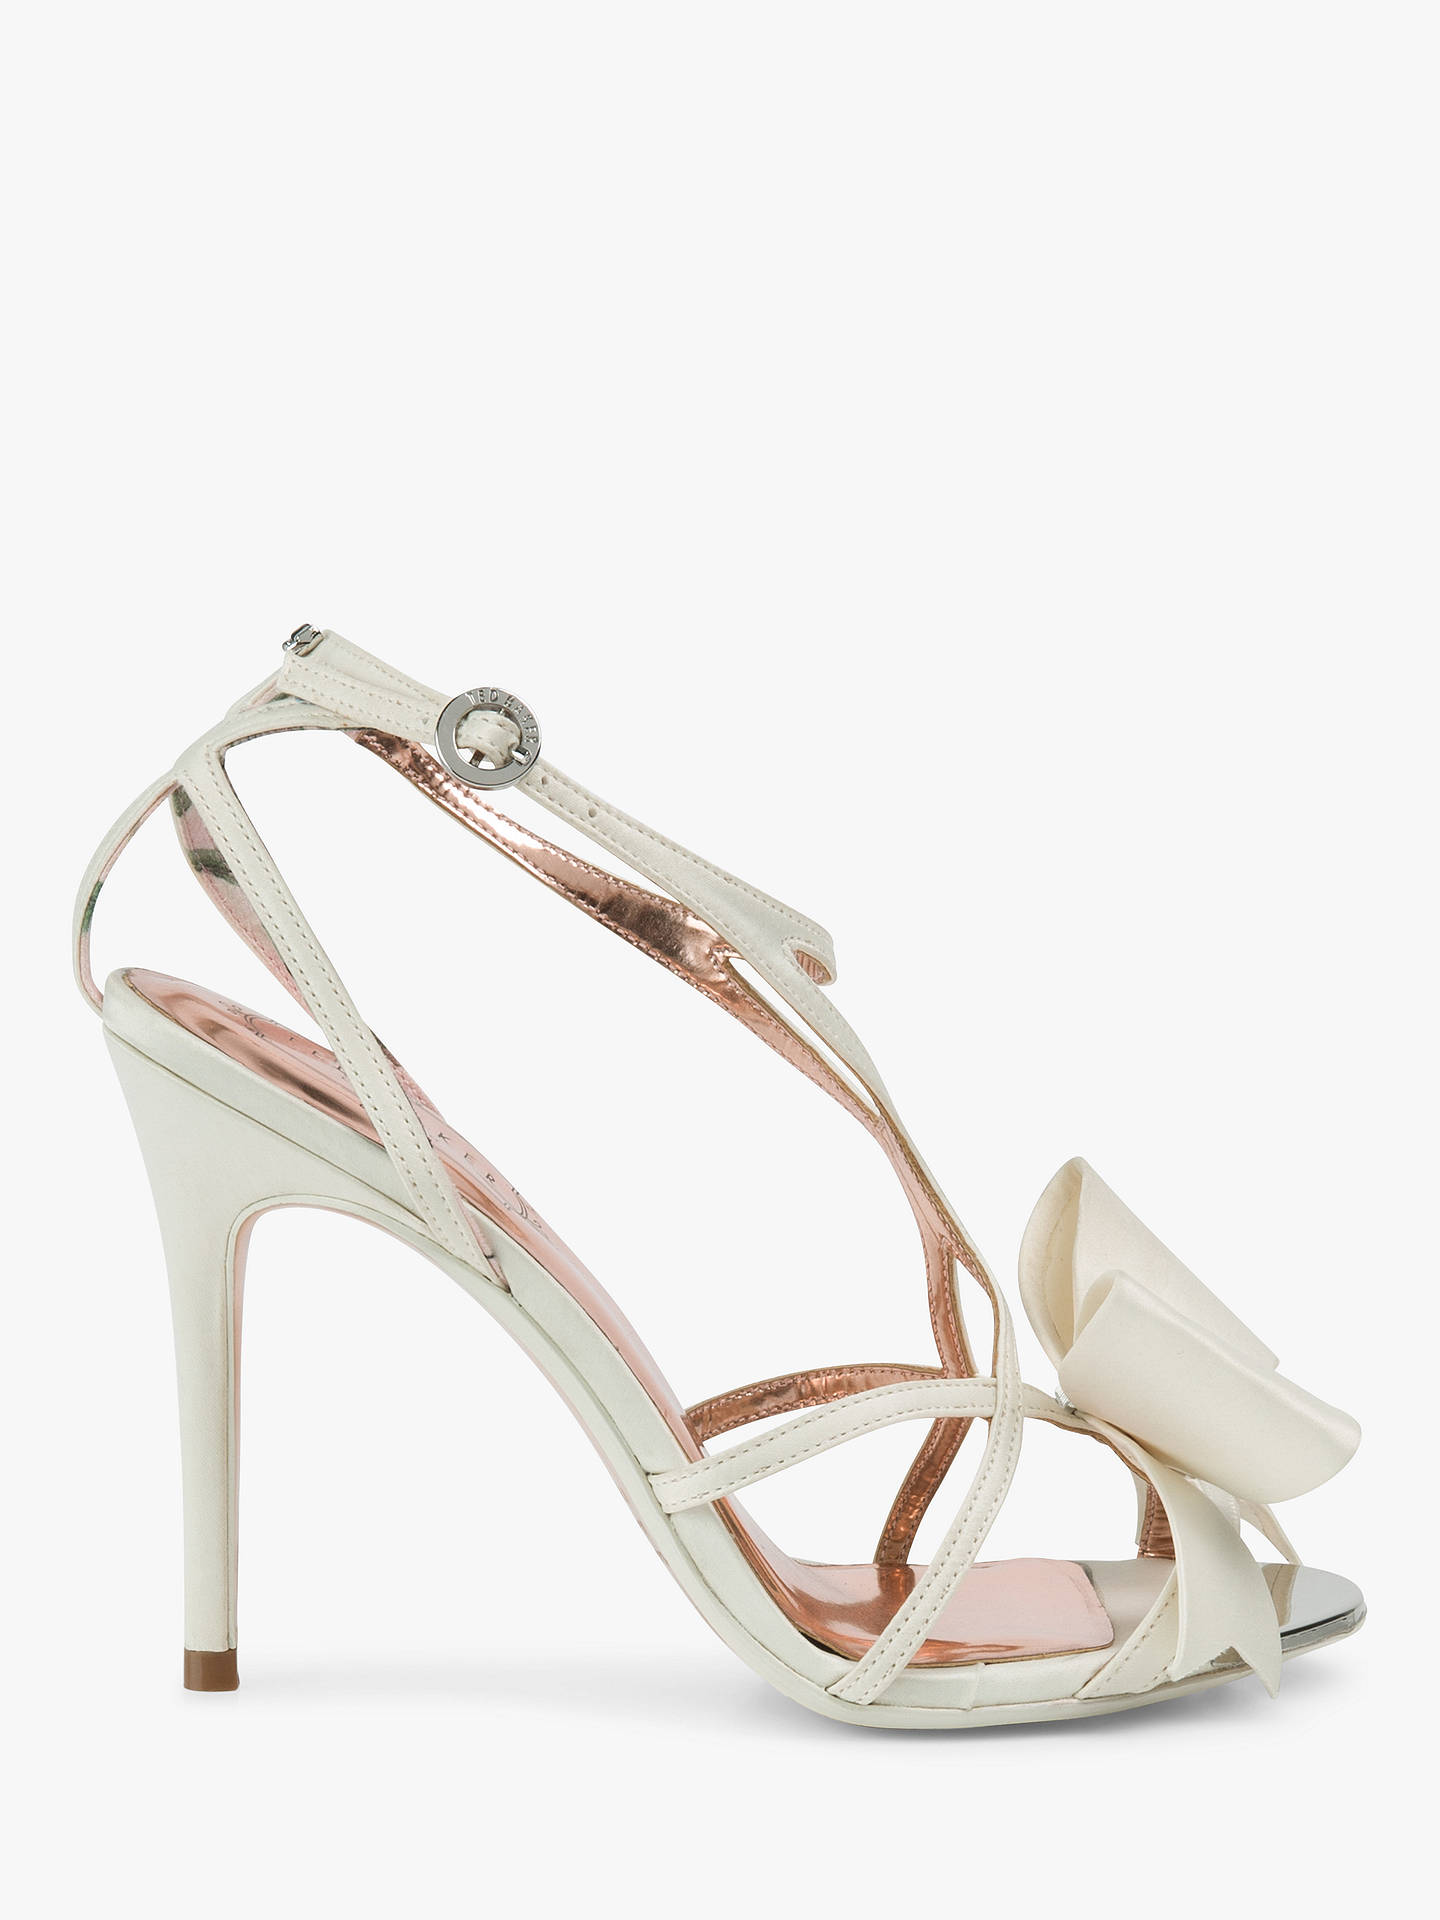 336564b72f3 Ted Baker Arayis Bow Stiletto Heel Sandals at John Lewis   Partners